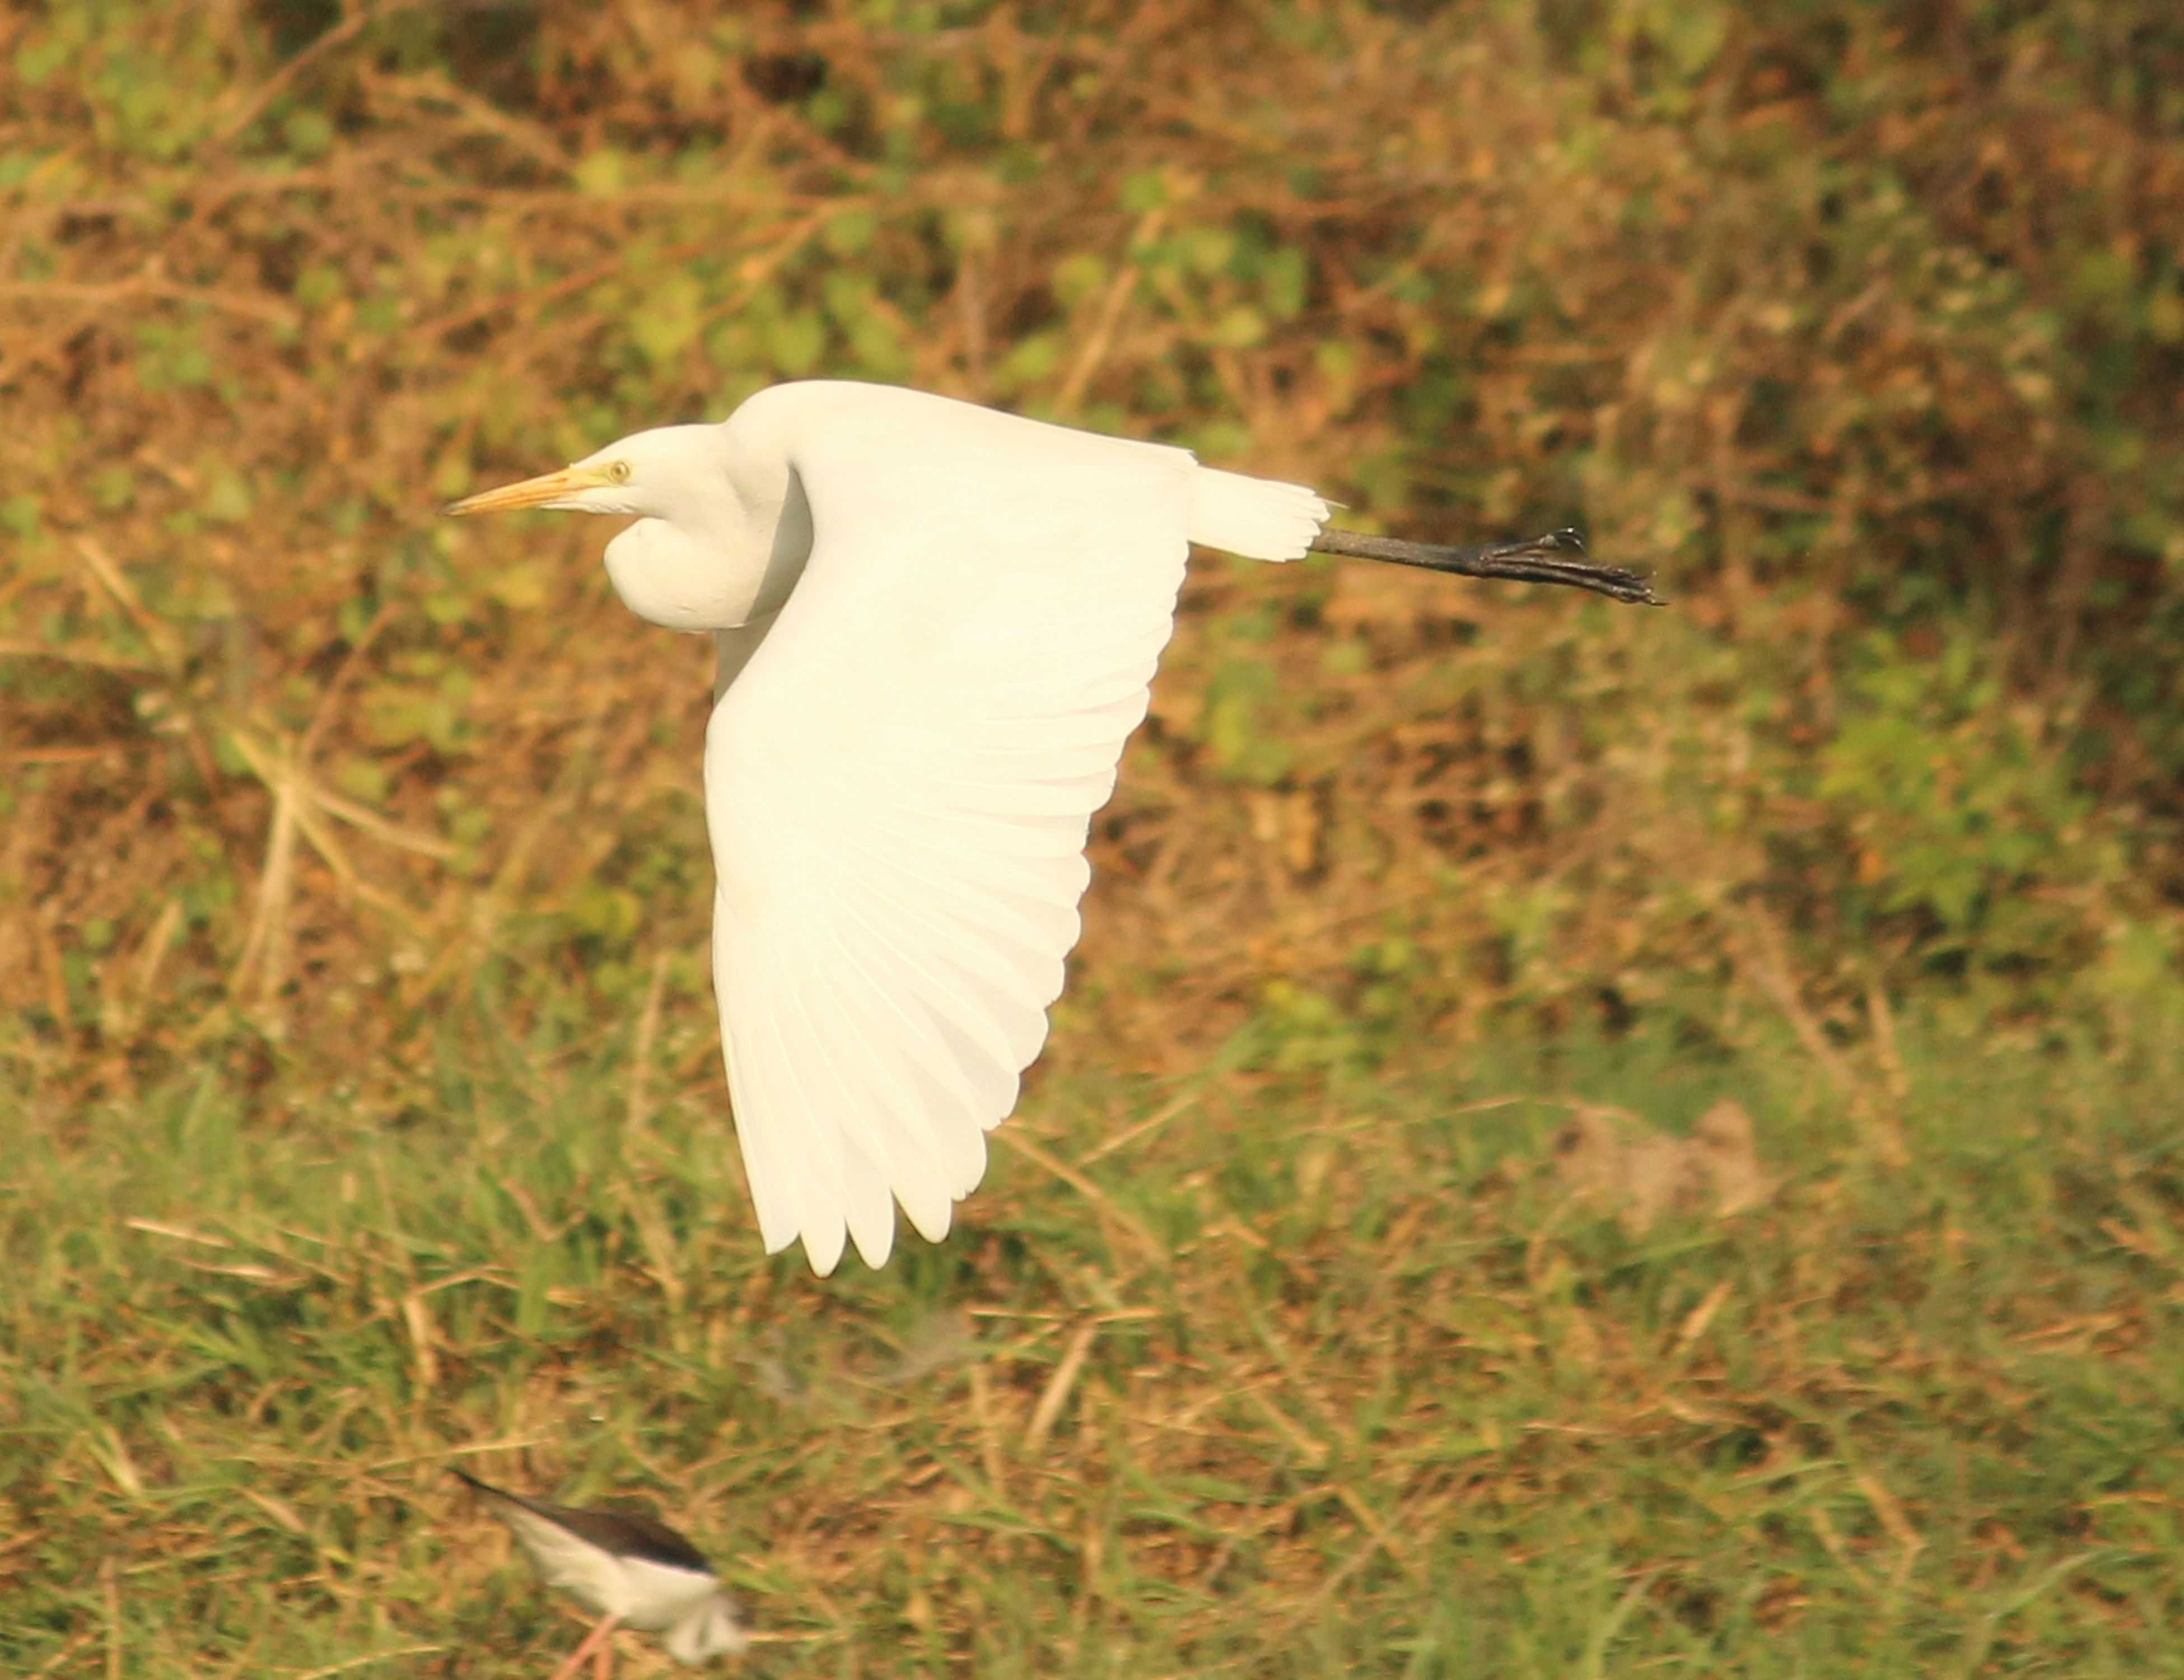 bird, animal themes, grass, one animal, animals in the wild, wildlife, field, focus on foreground, close-up, nature, white color, day, outdoors, grassy, mushroom, beauty in nature, no people, feather, full length, selective focus